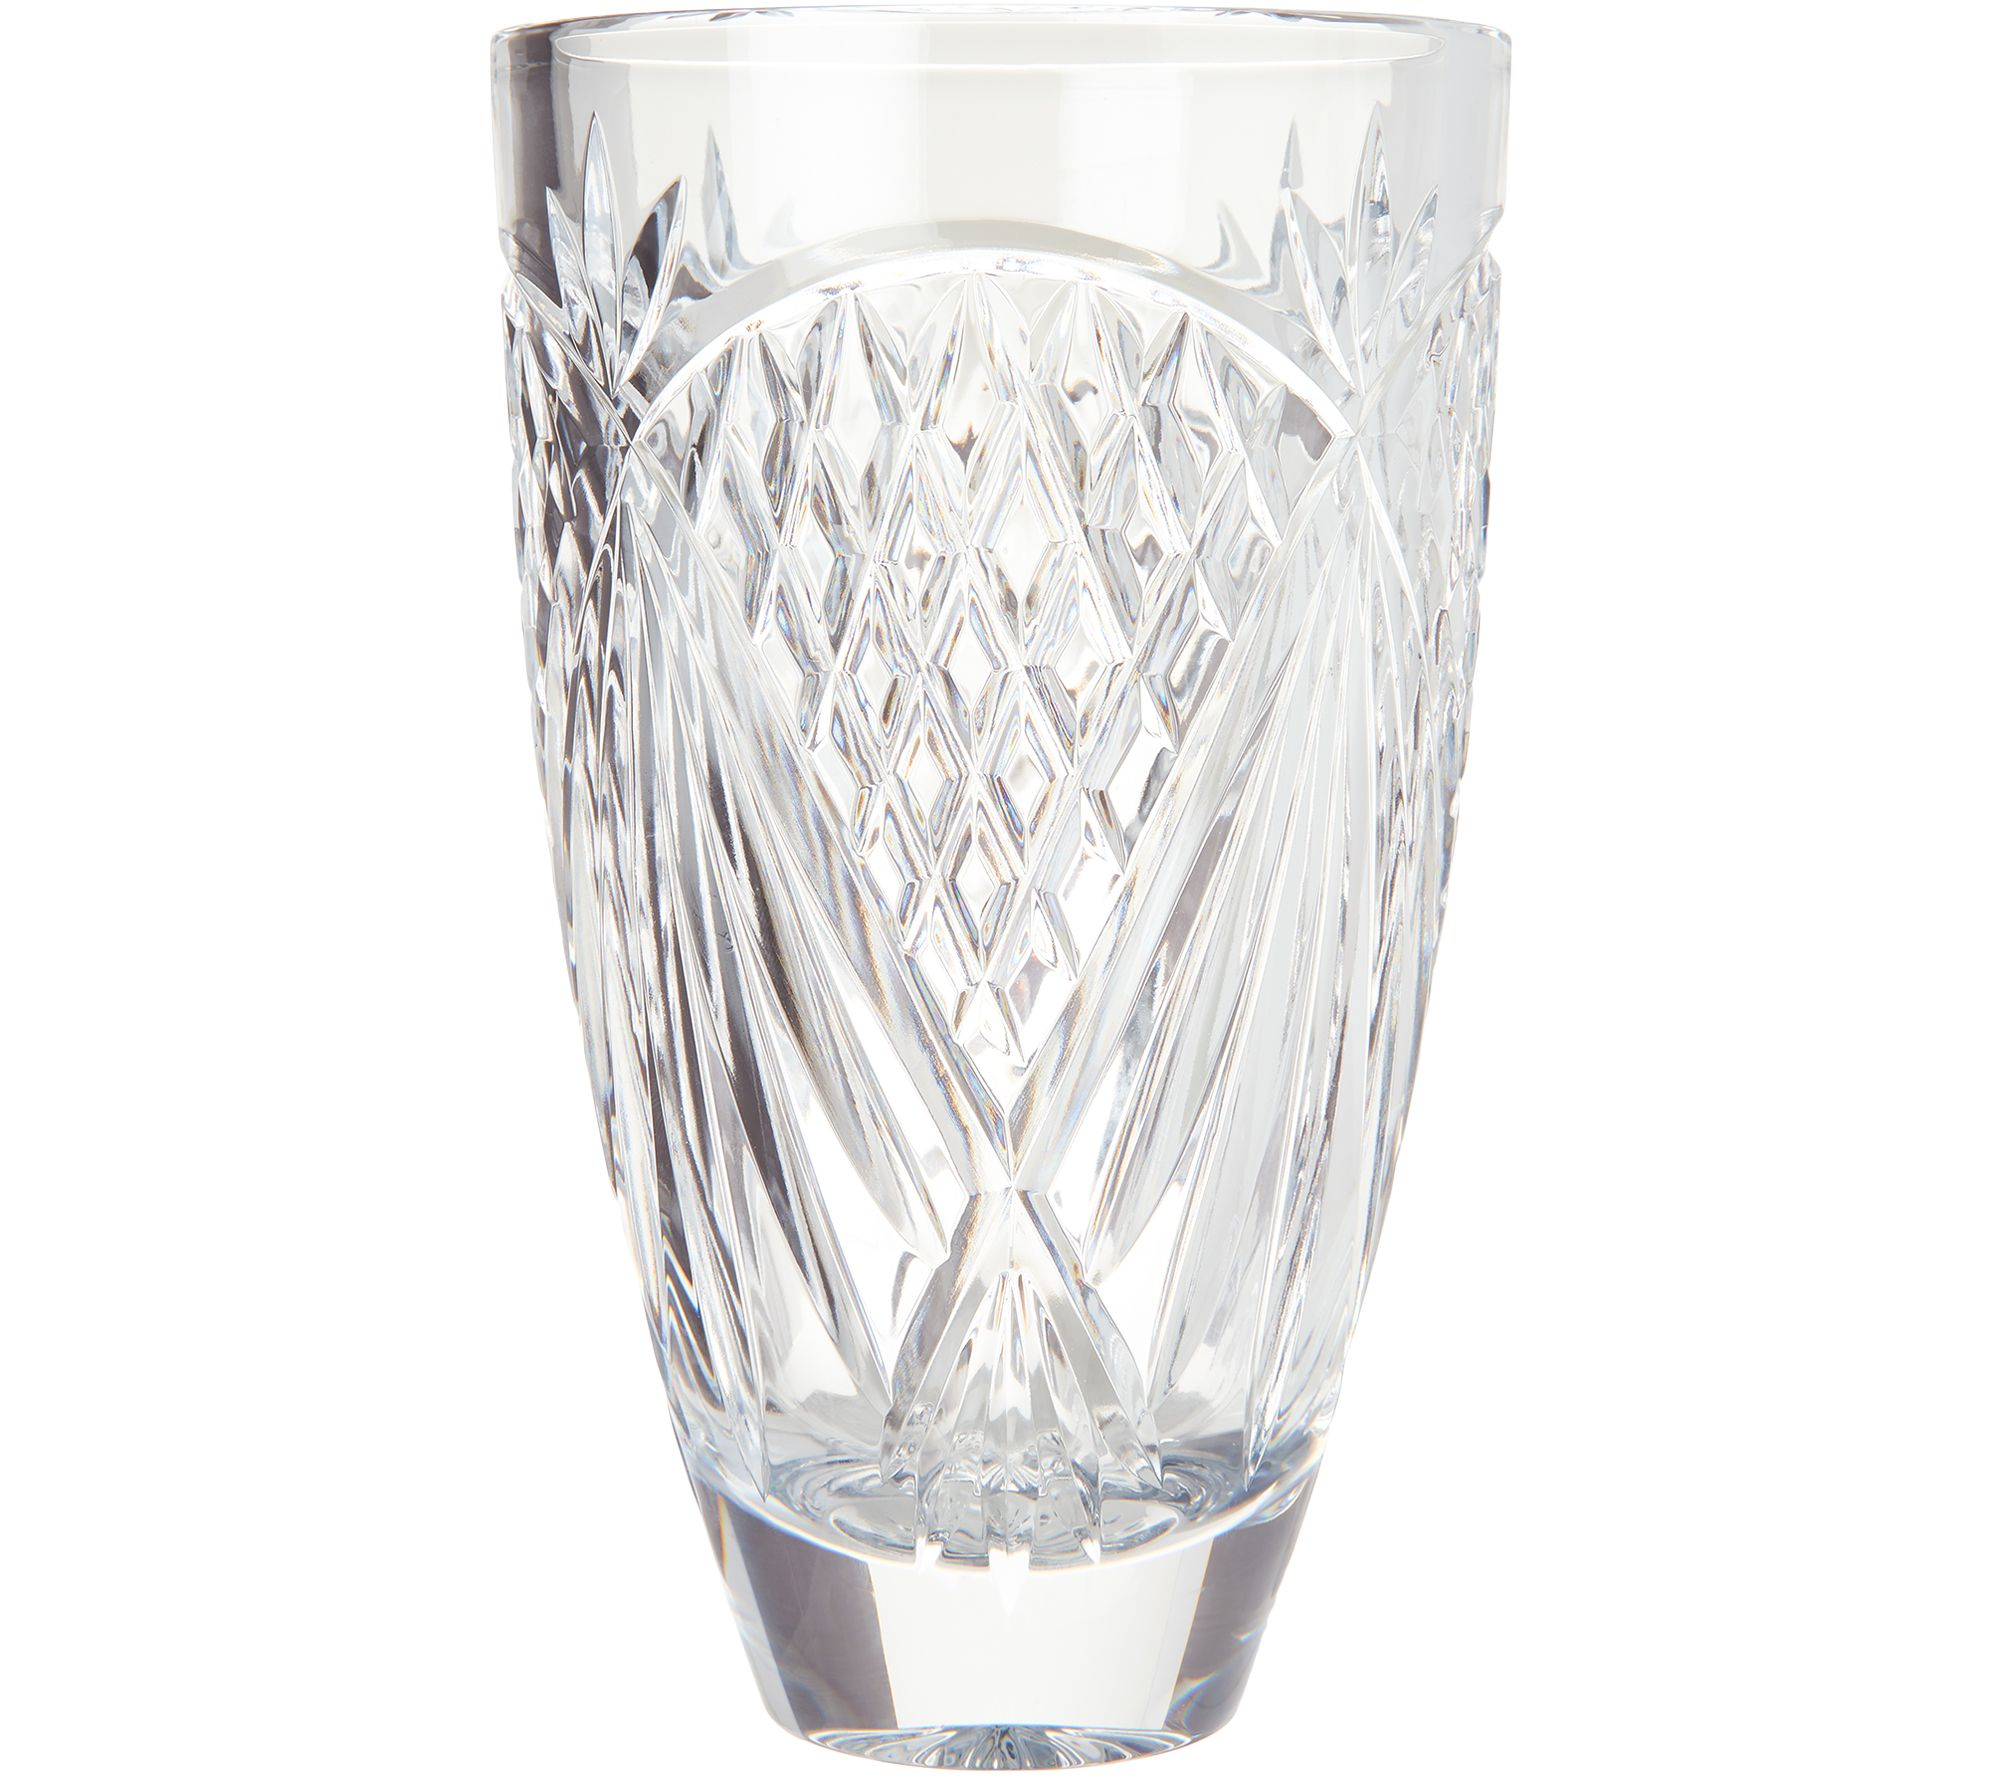 Vases decorative accents for the home qvc waterford crystal 85 omara vase h213891 reviewsmspy